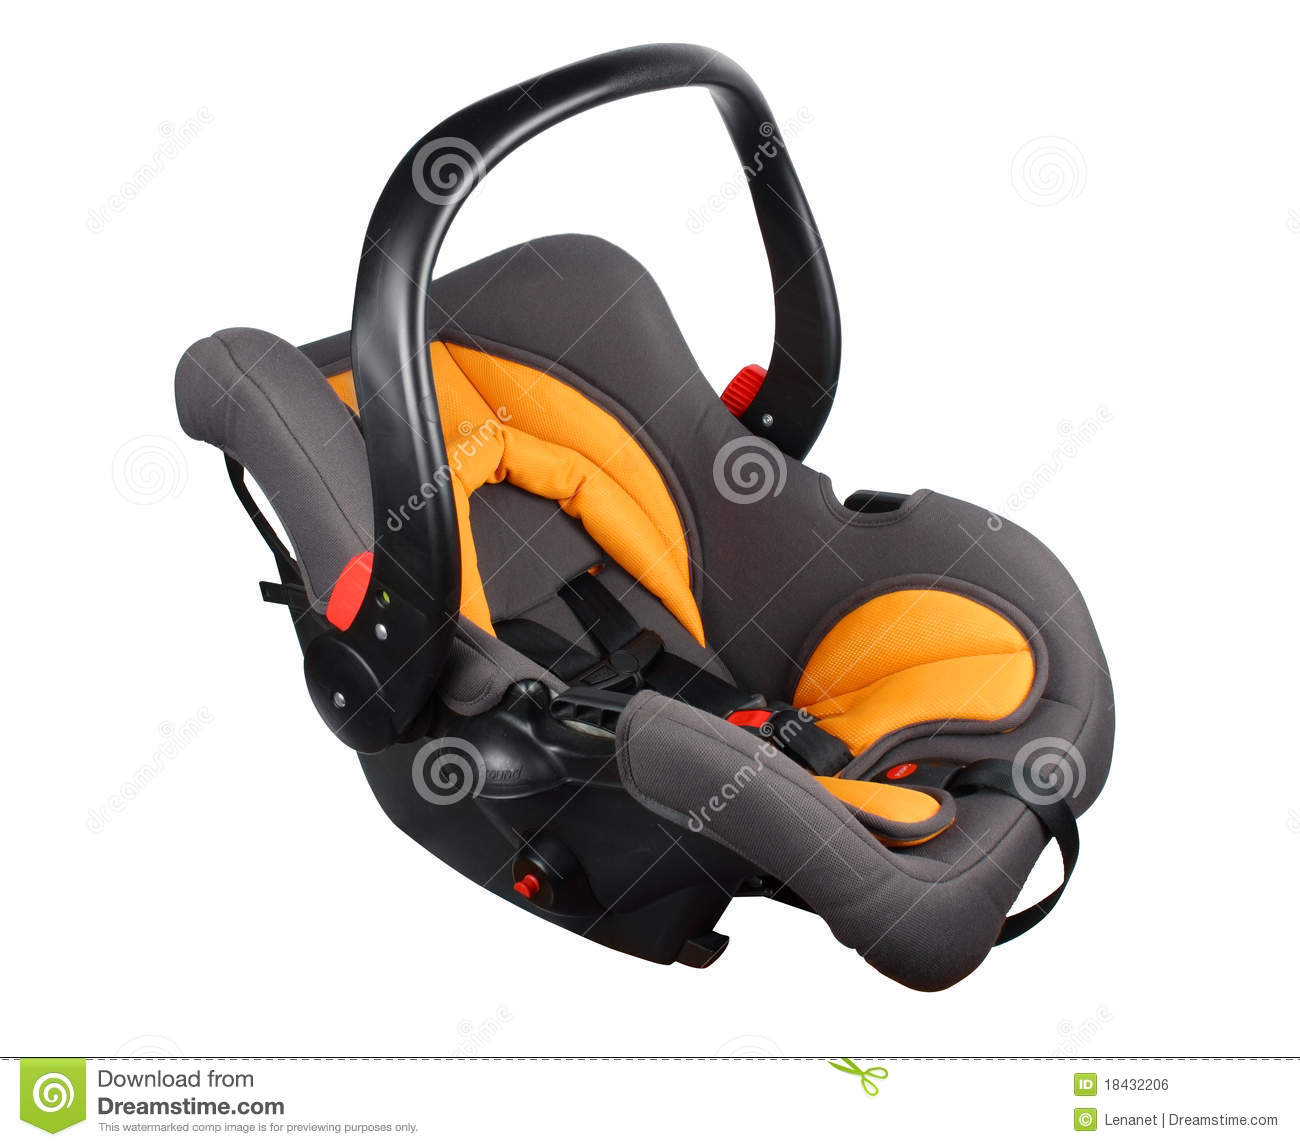 baby in car seat royalty free stock image 9374554. Black Bedroom Furniture Sets. Home Design Ideas